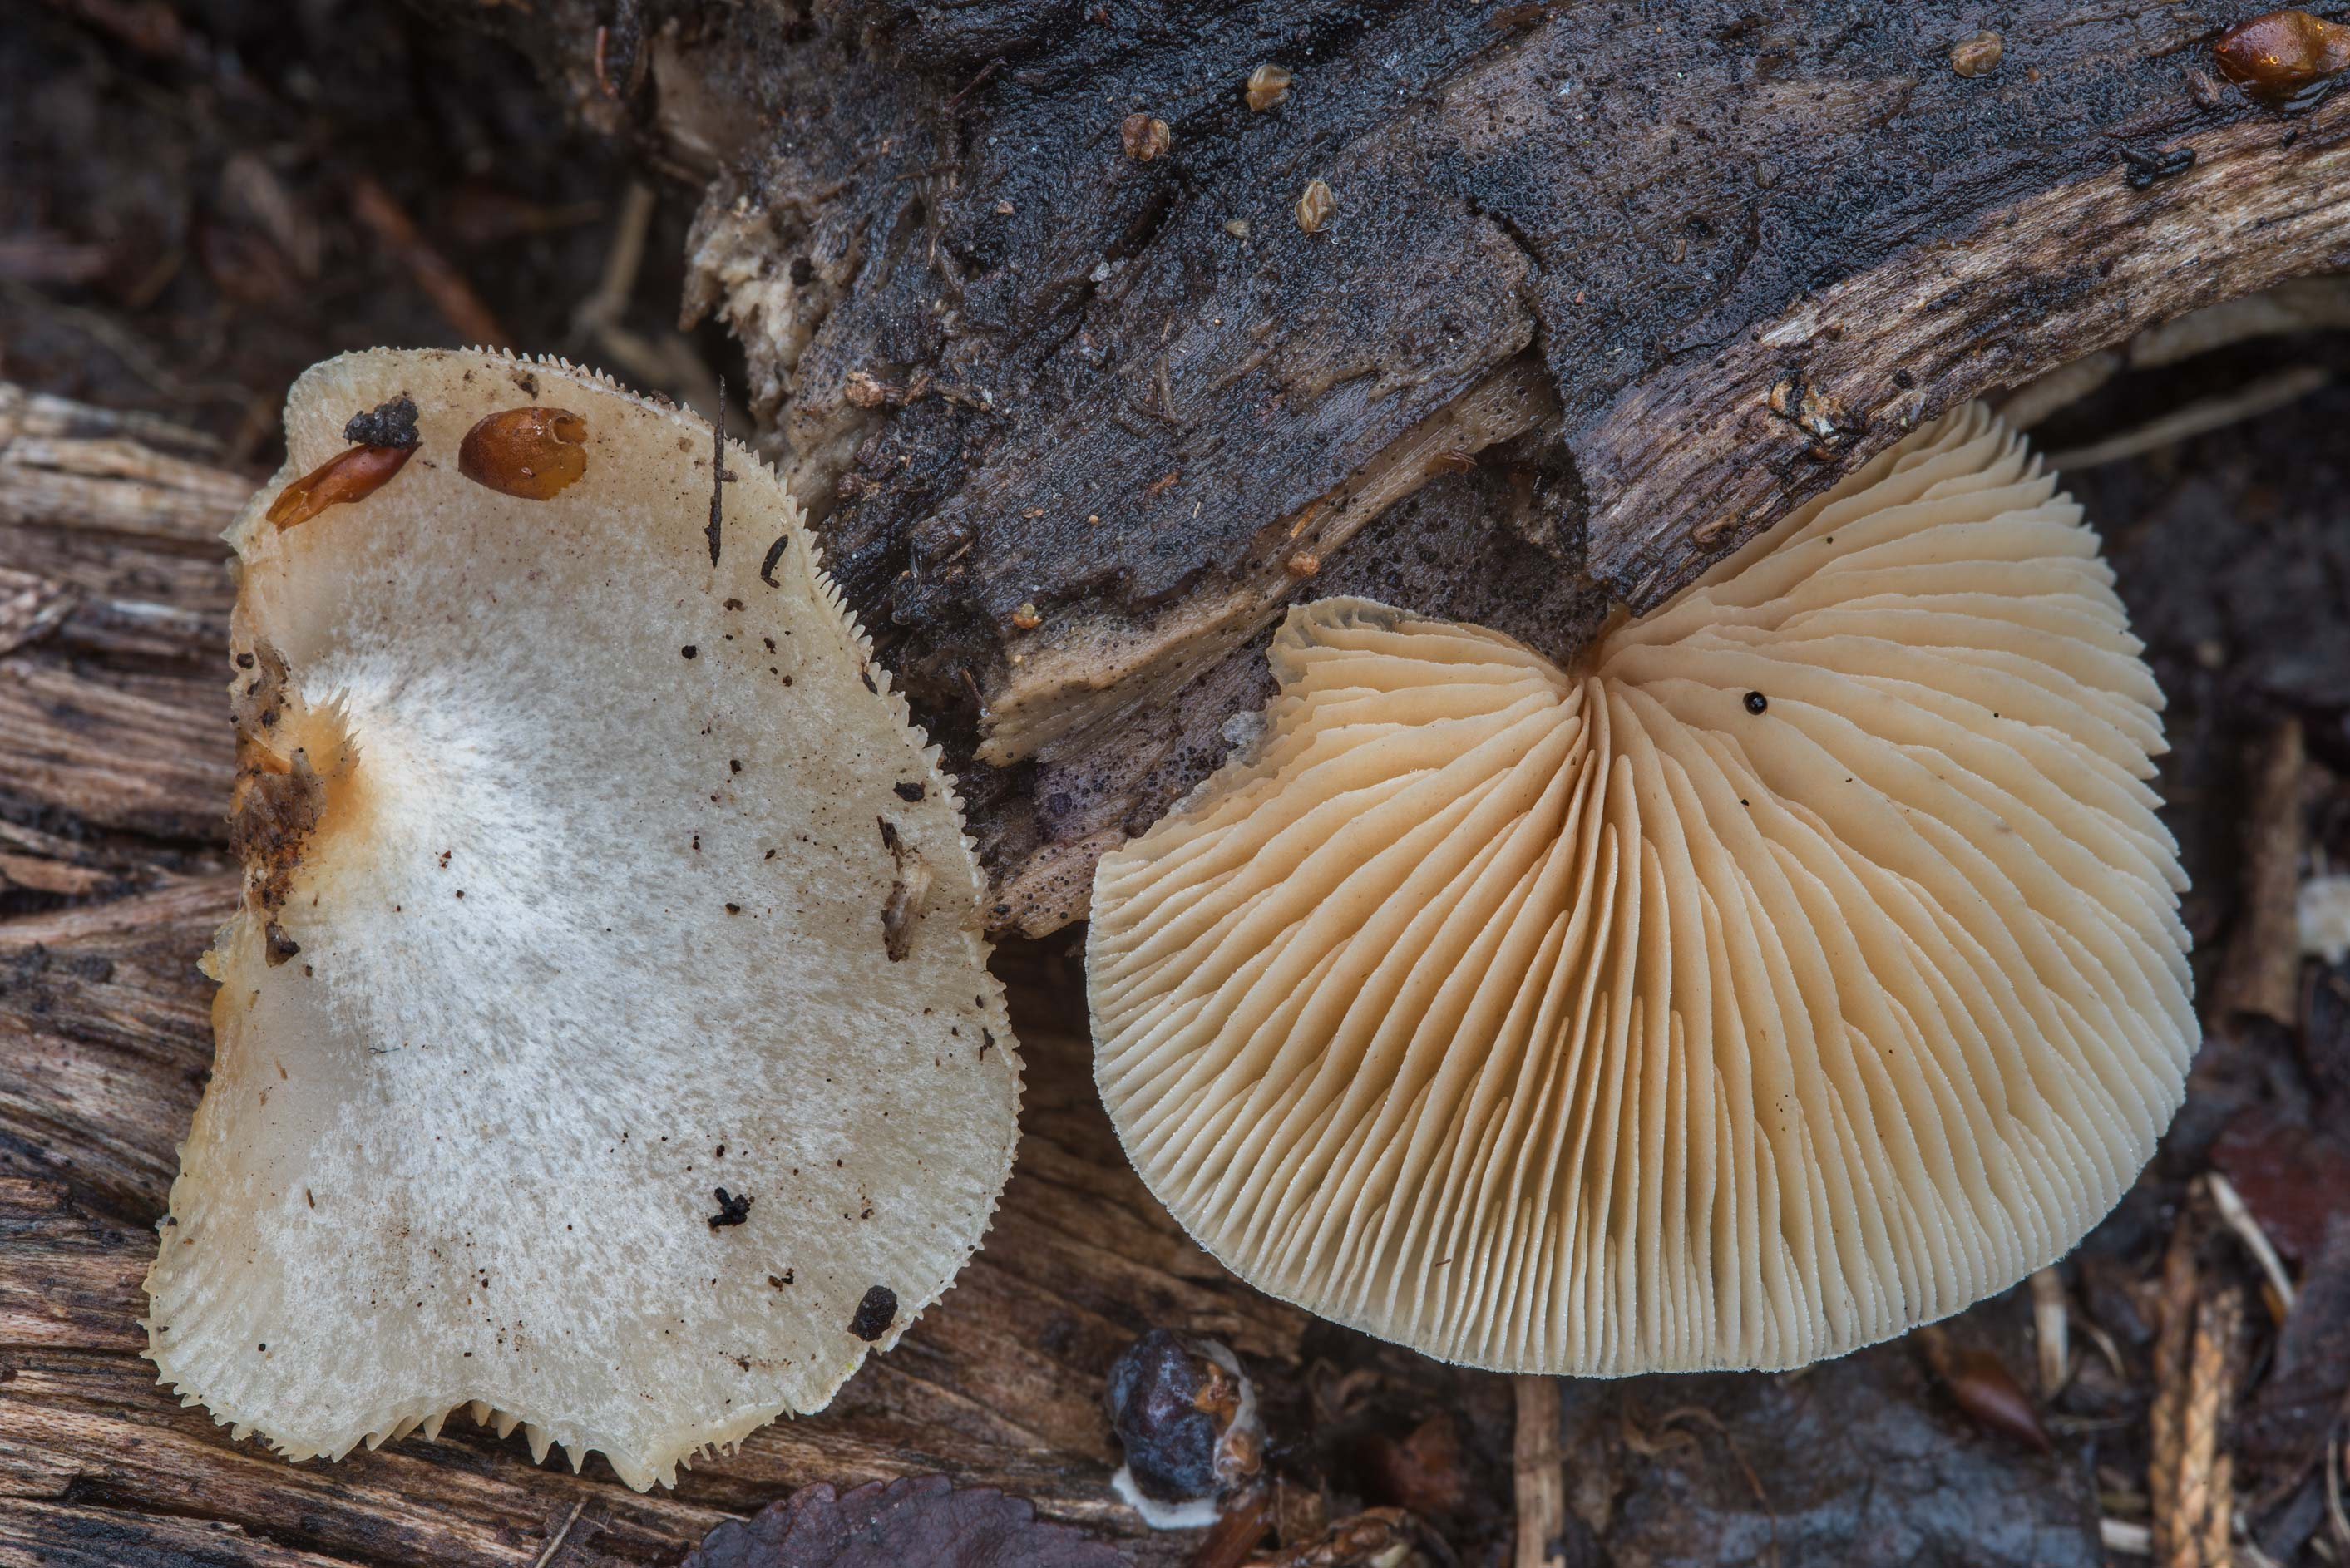 Peeling oysterling mushroom (Crepidotus mollis) in Bee Creek Park. College Station, Texas